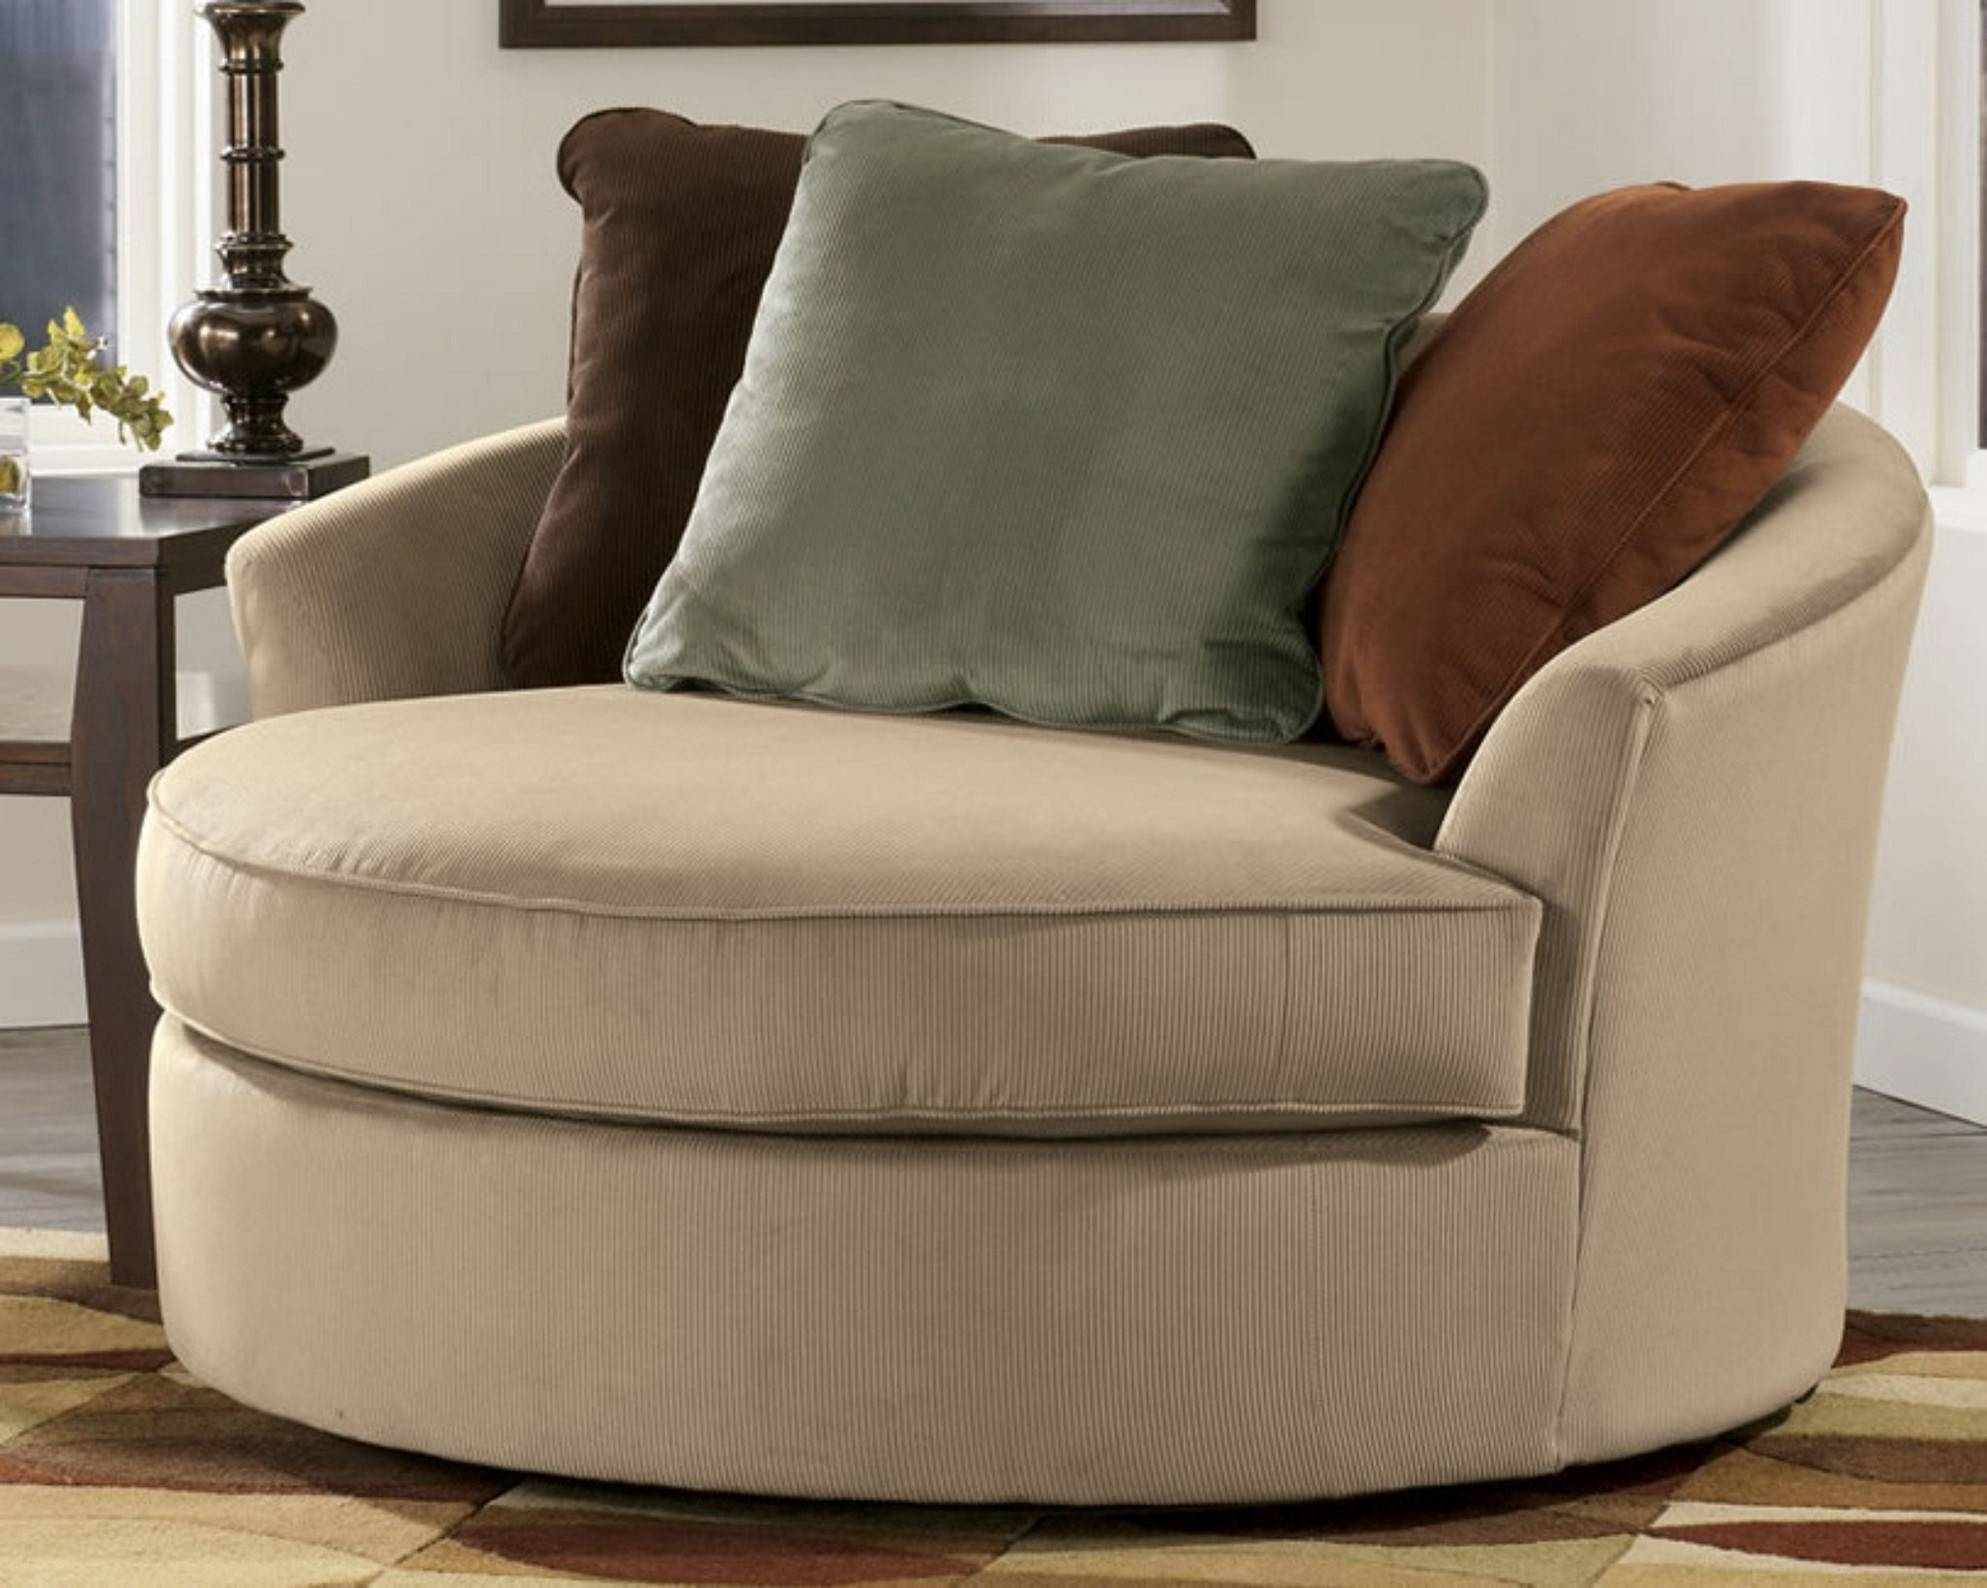 Sofas Center : Shocking Round Sofa Chair Picture Concept Modern In with regard to Round Sofa Chair Living Room Furniture (Image 29 of 30)